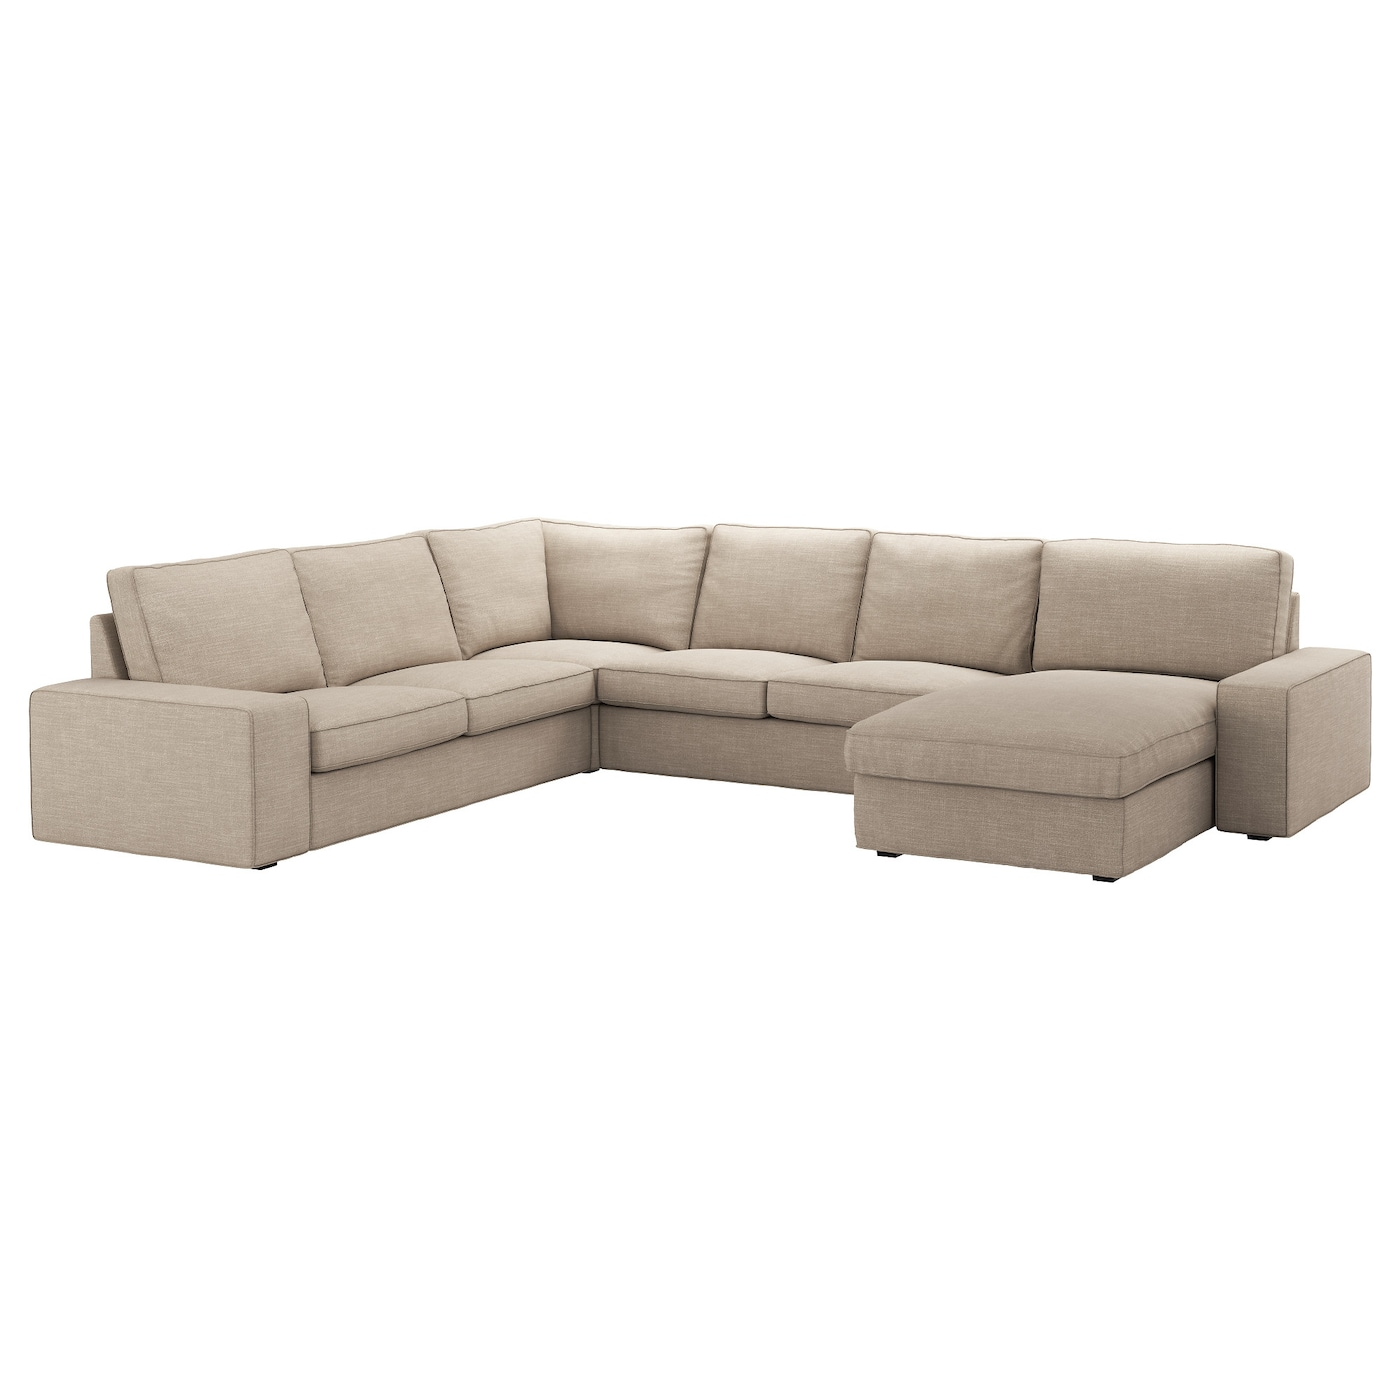 Couch Mit Recamiere Ikea Sofa Couch Vaxholm In Anthrazit Er Sofa